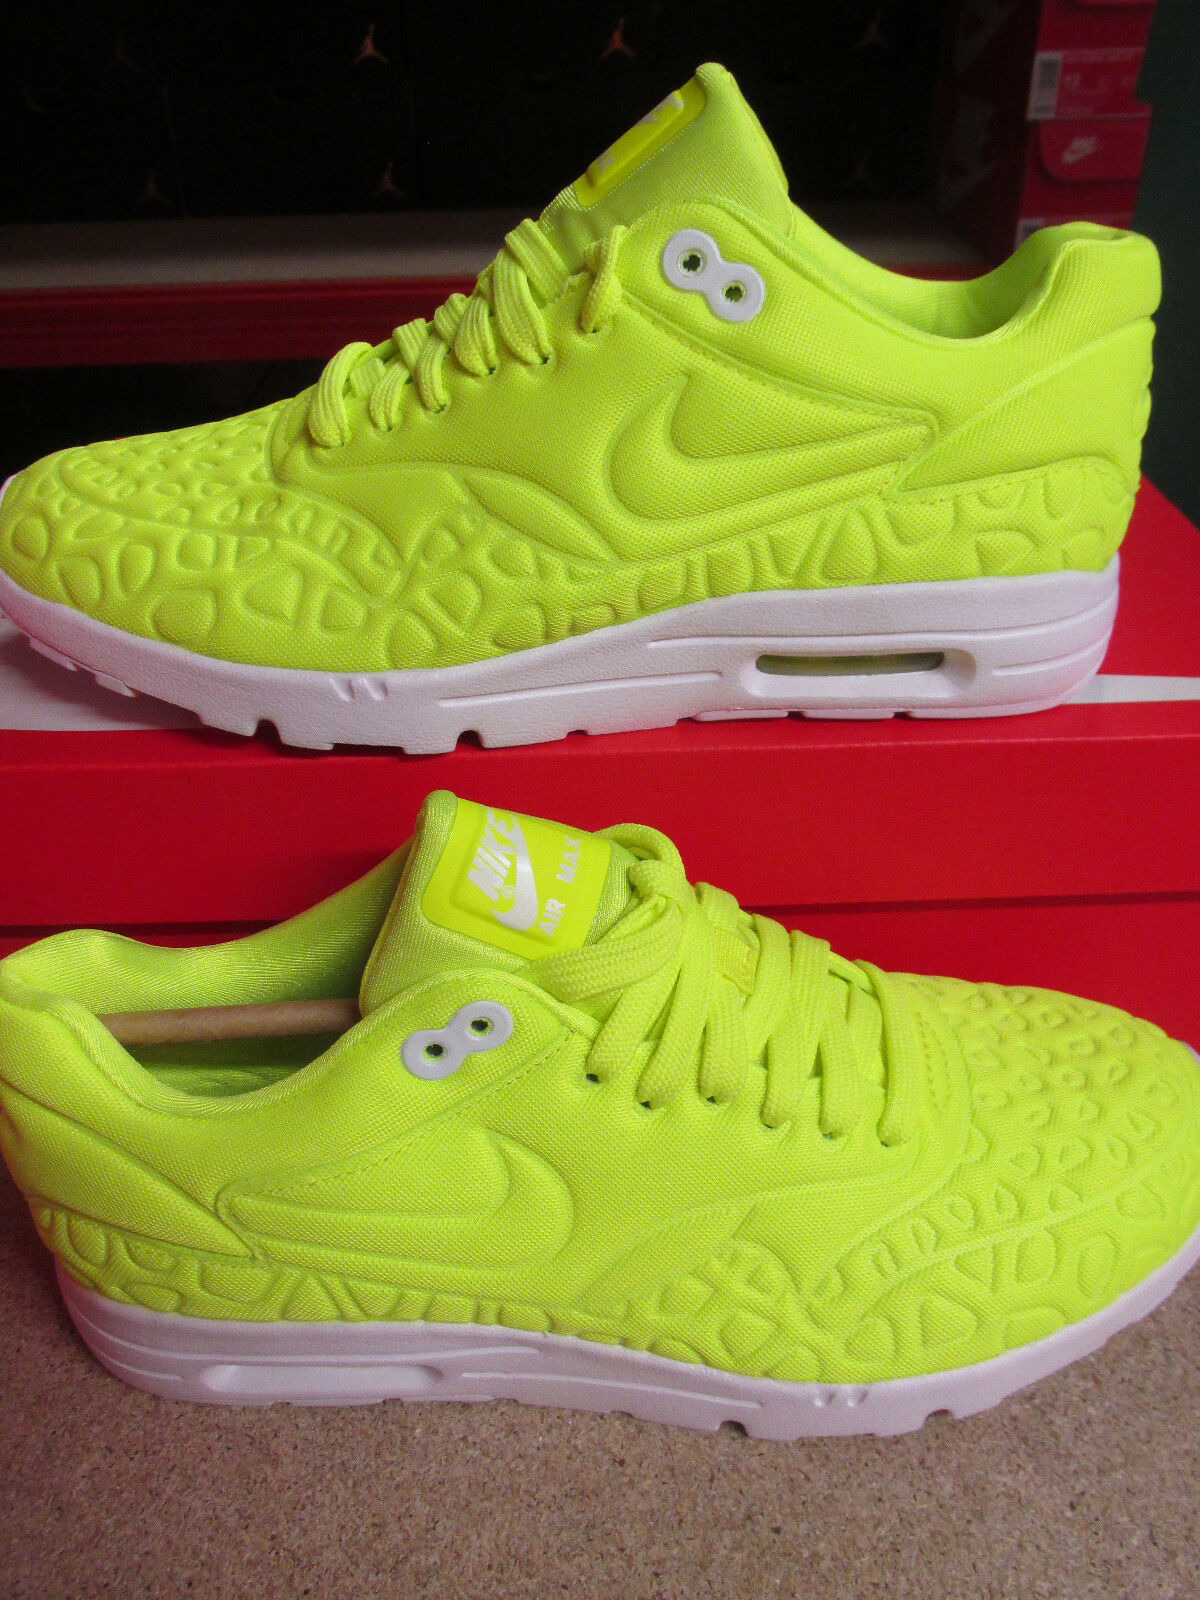 Nike Womens Air Max 1 Ultra Plush Running Trainers 844882 700 Sneakers Shoes